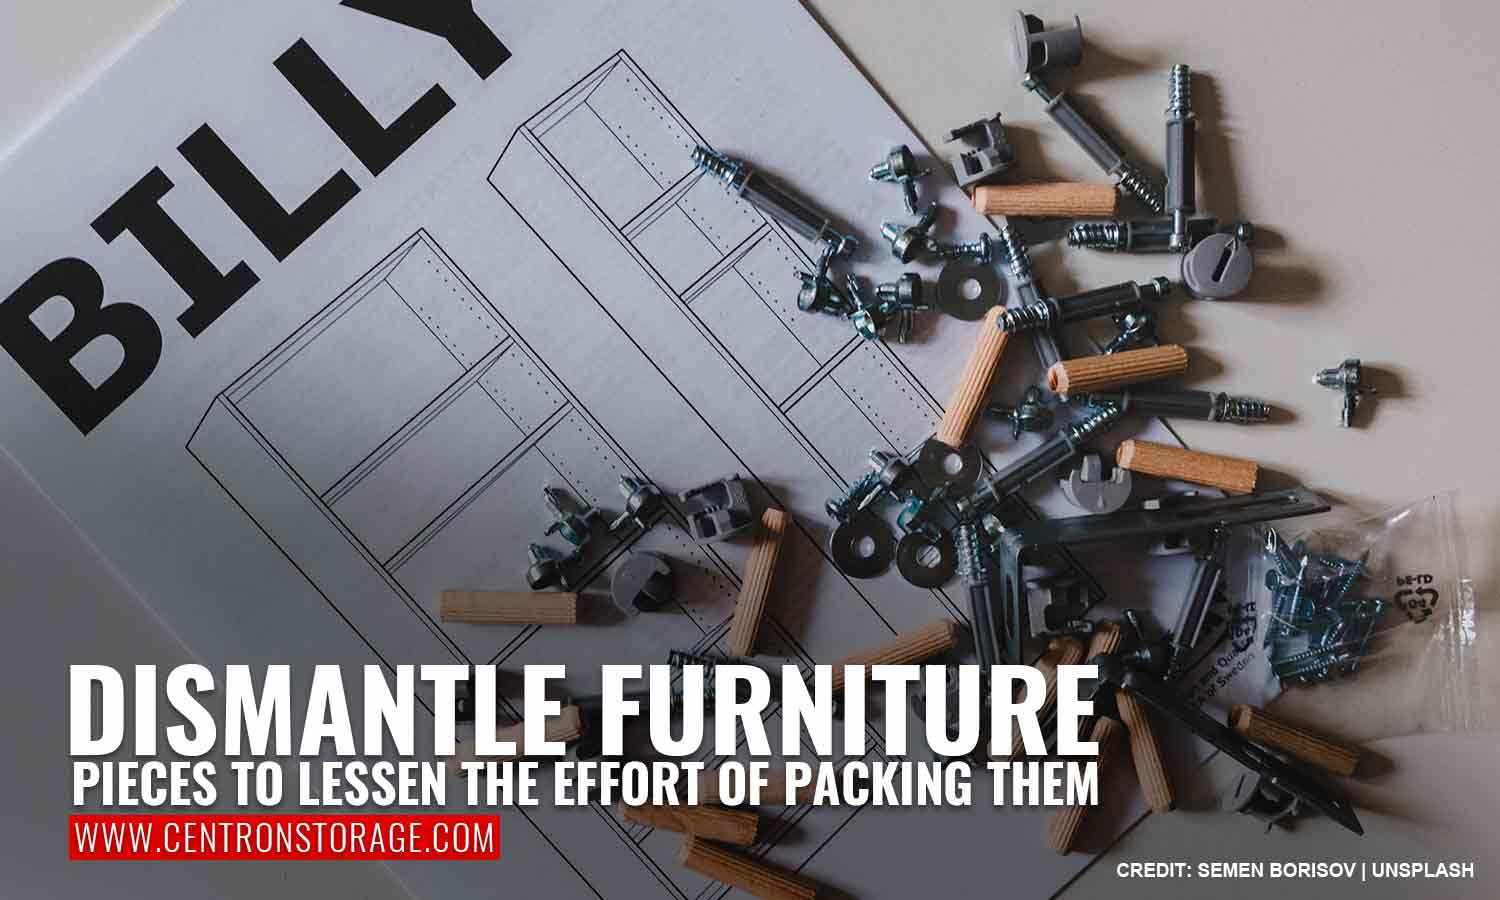 Dismantle furniture pieces to lessen the effort of packing them